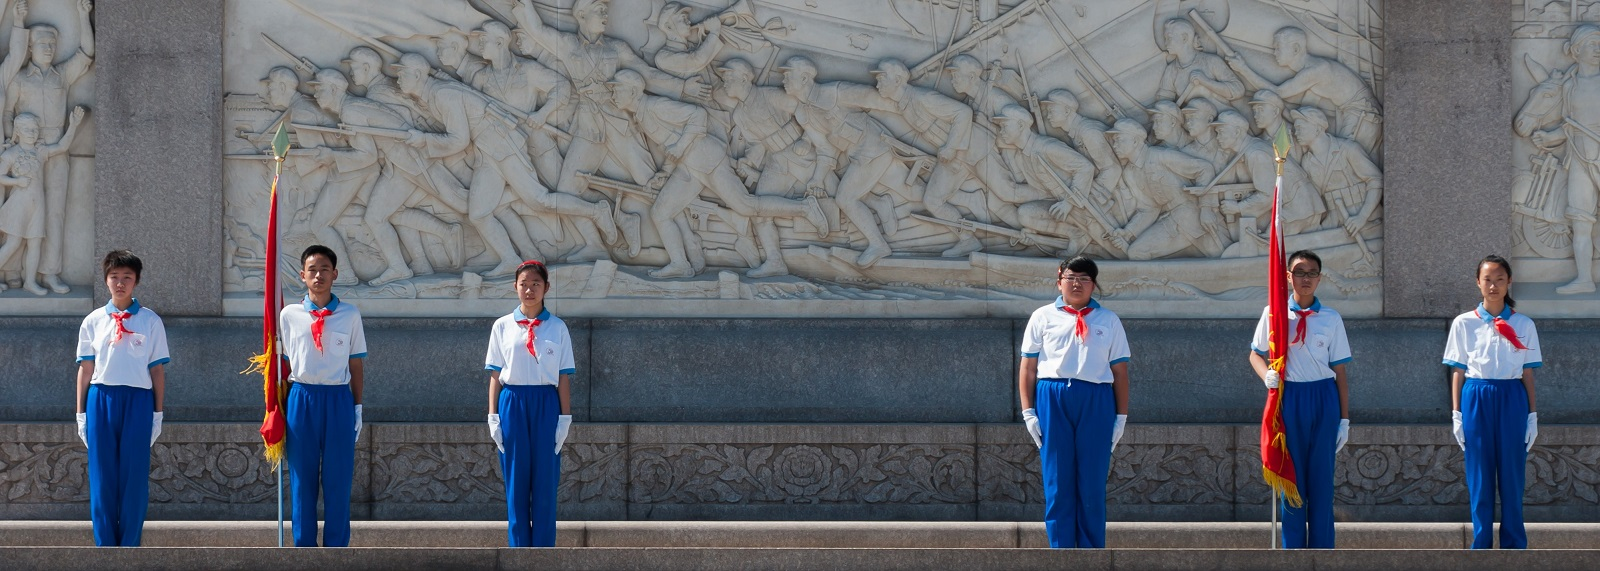 Young Pioneers of China standing honour guard at the Monument to the People's Heroes at Tiananmen Square (Photo: CEphoto/Uwe Aranas)